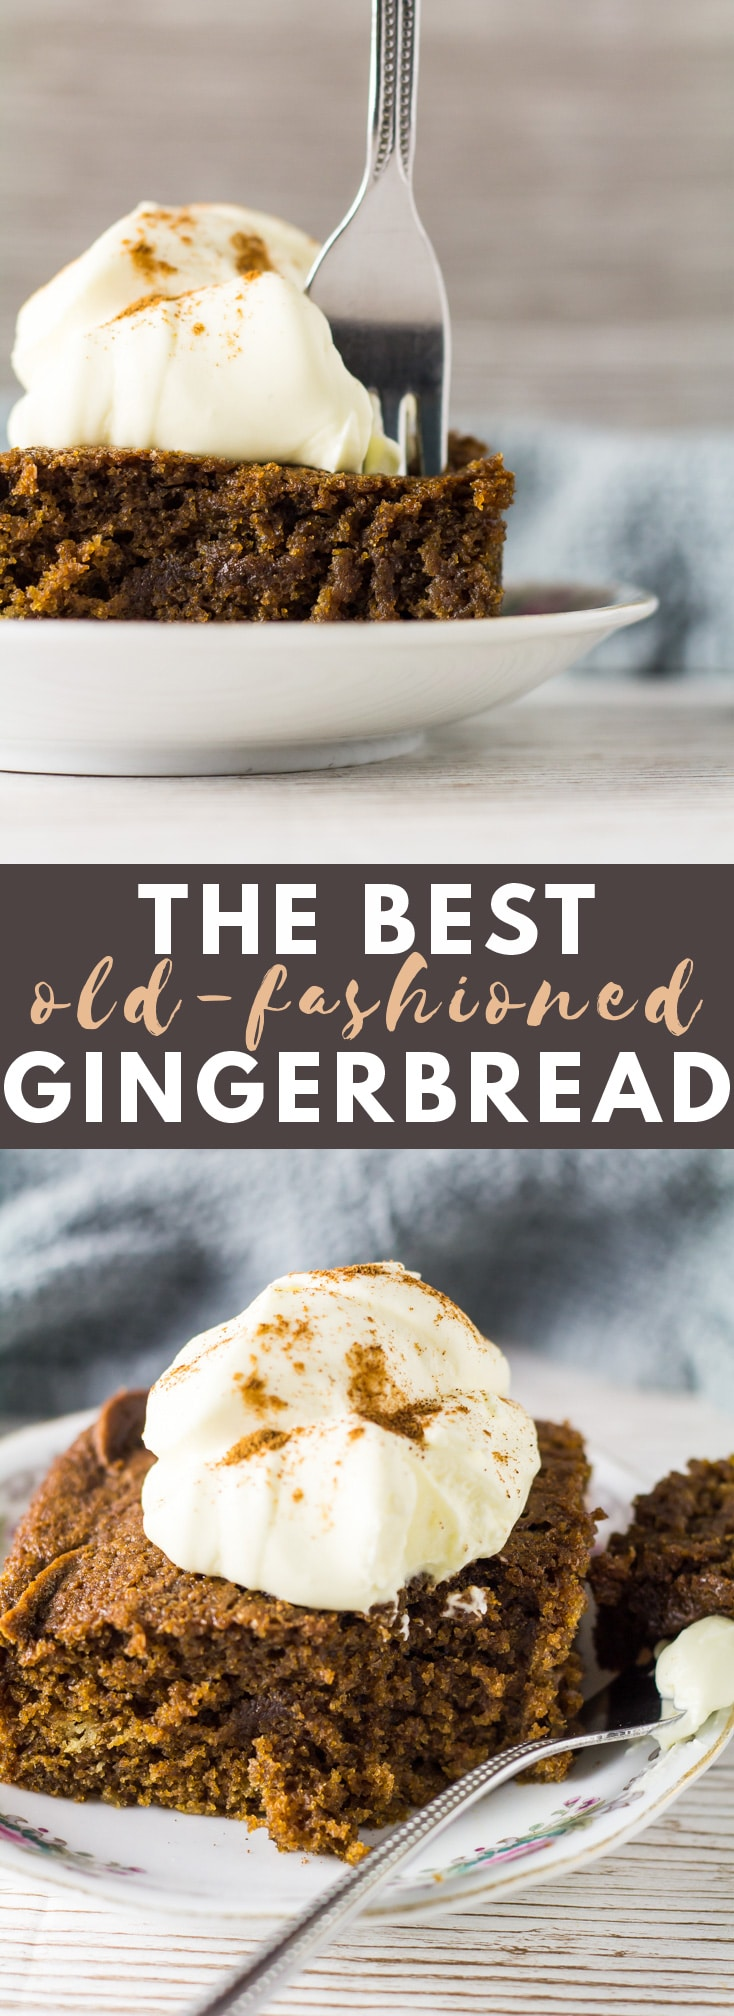 Old-Fashioned Gingerbread - Deliciously moist gingerbread that is loaded with warm, comforting flavours and topped with a dollop of whipped cream. The BEST old-fashioned gingerbread!